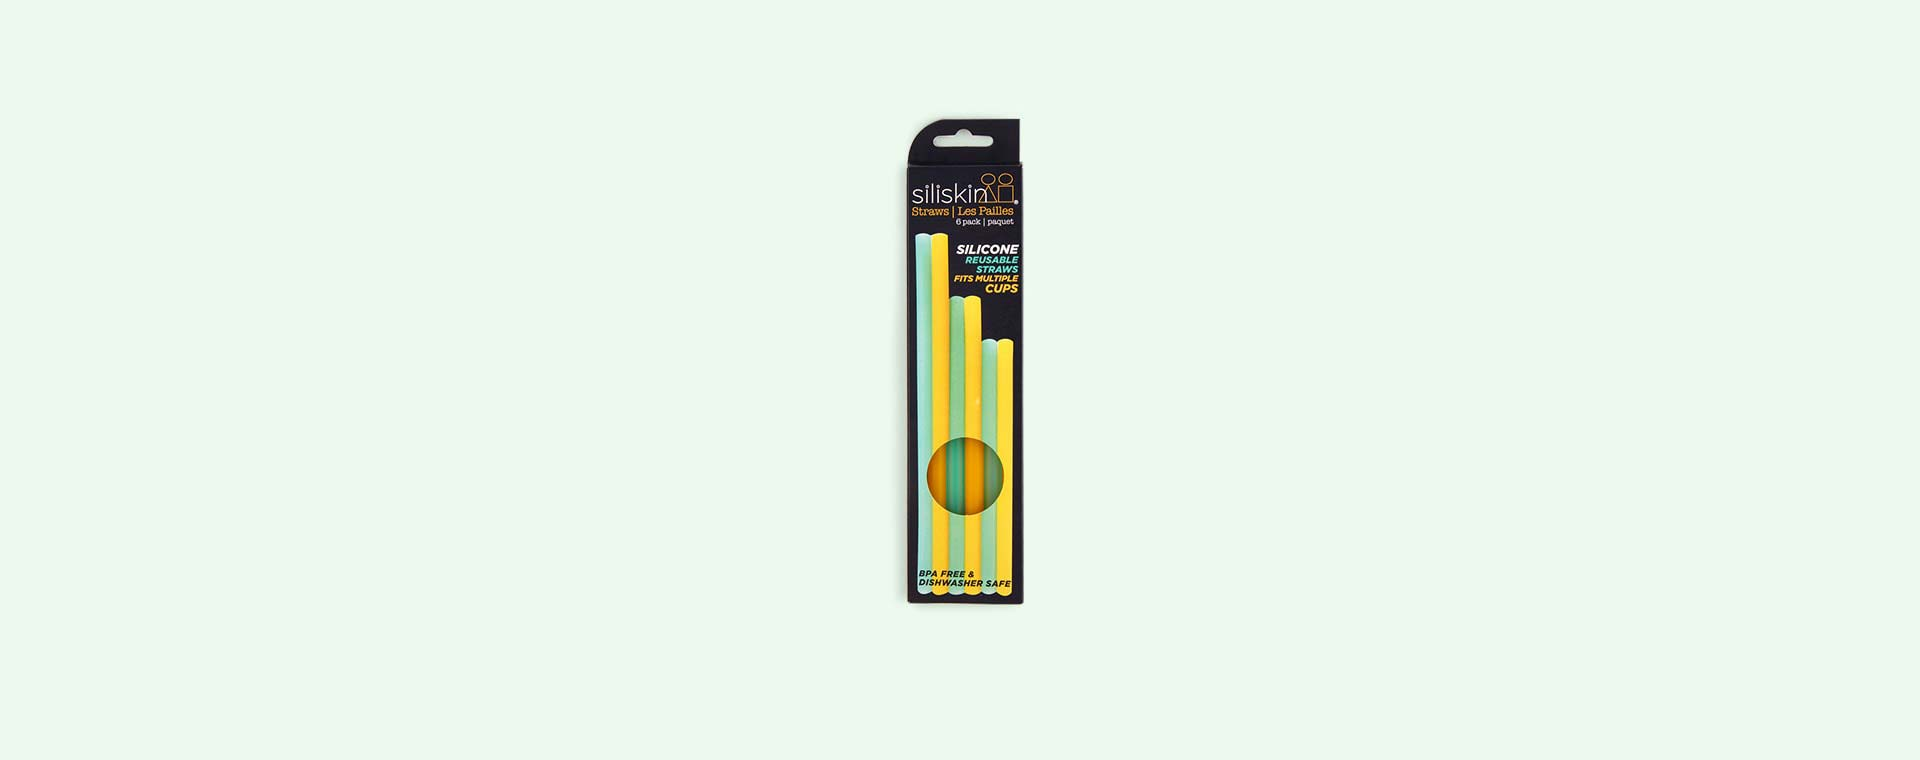 Orange & Aqua Go Sili Straw Pack